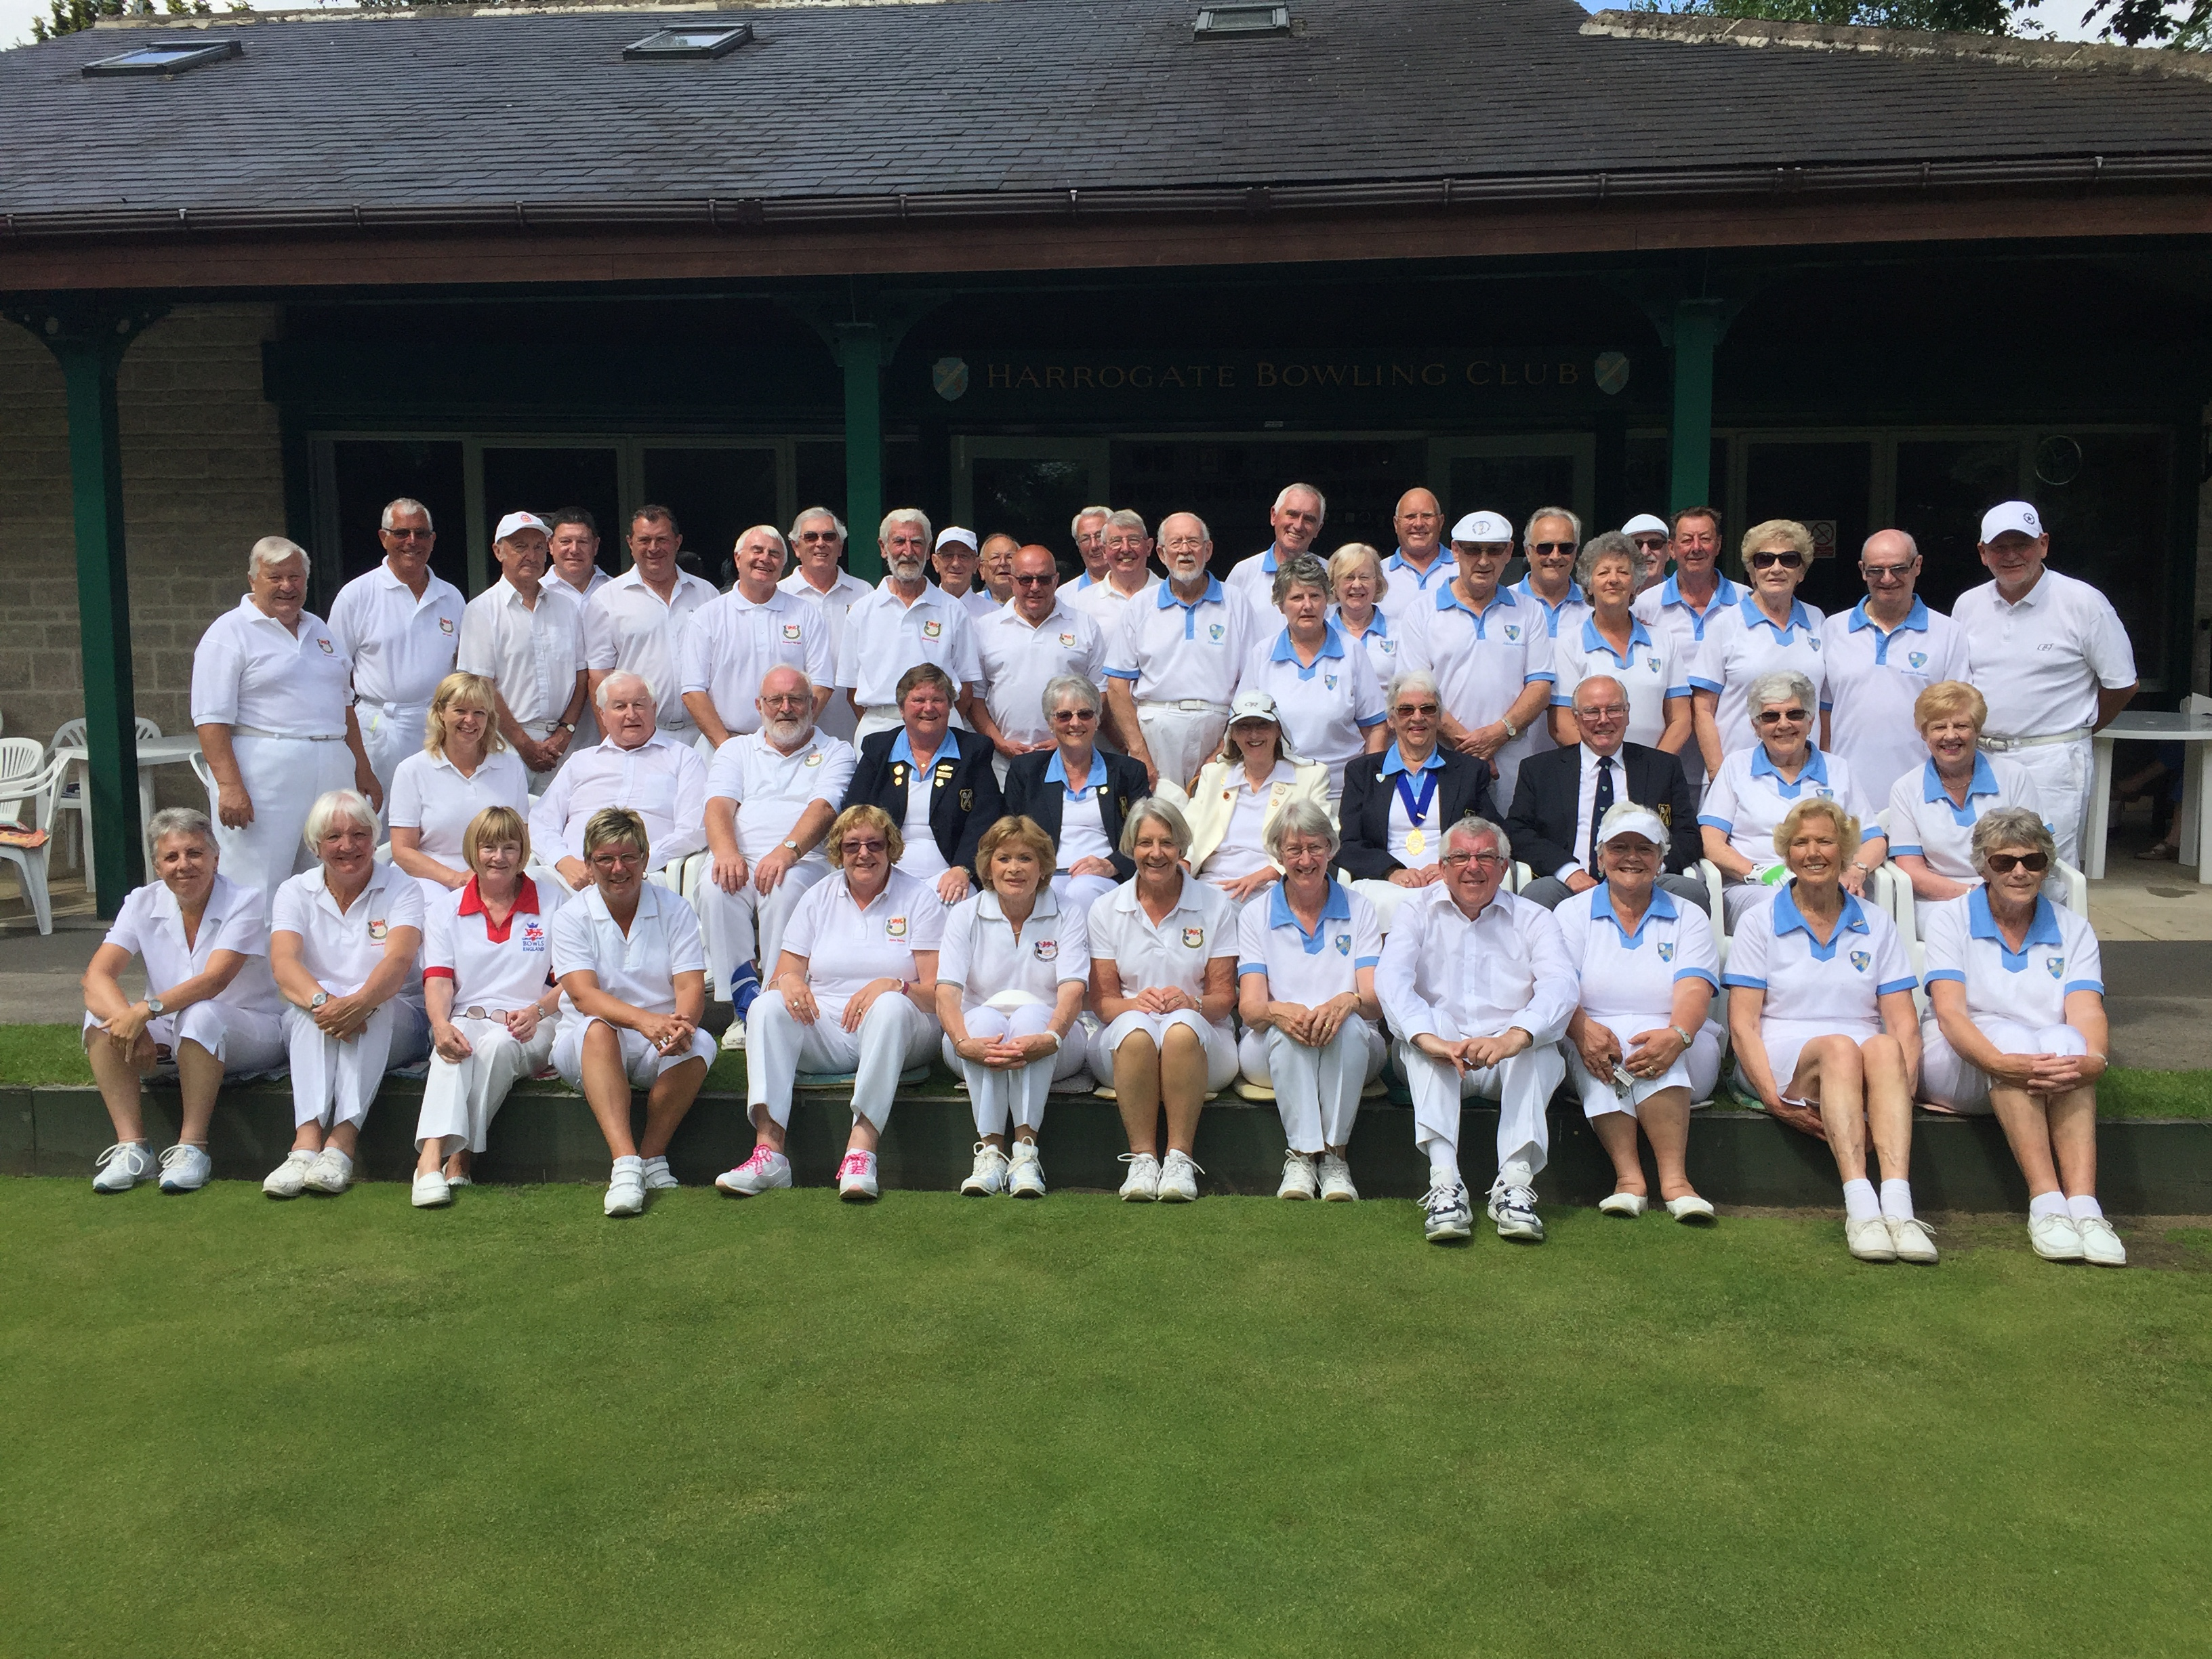 Friends of English Bowls